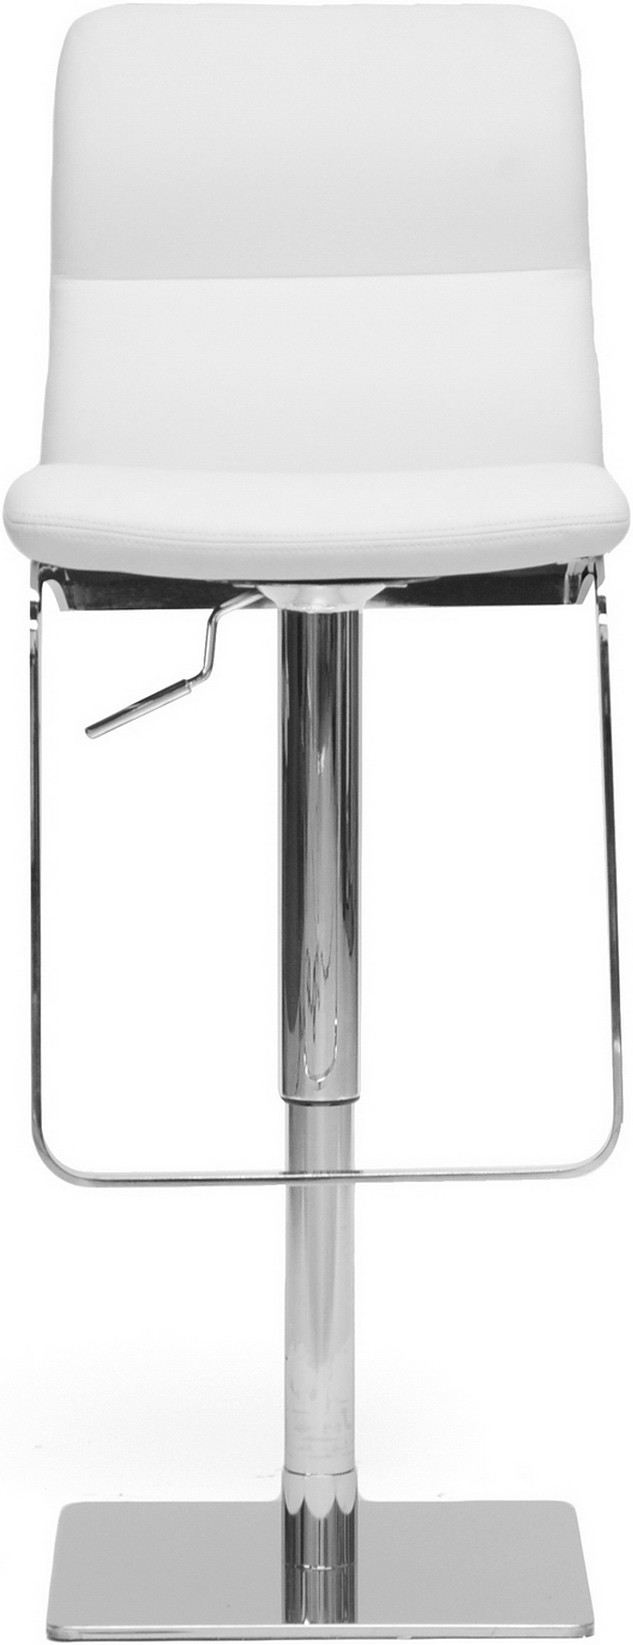 the helsinki modern bar stool in white